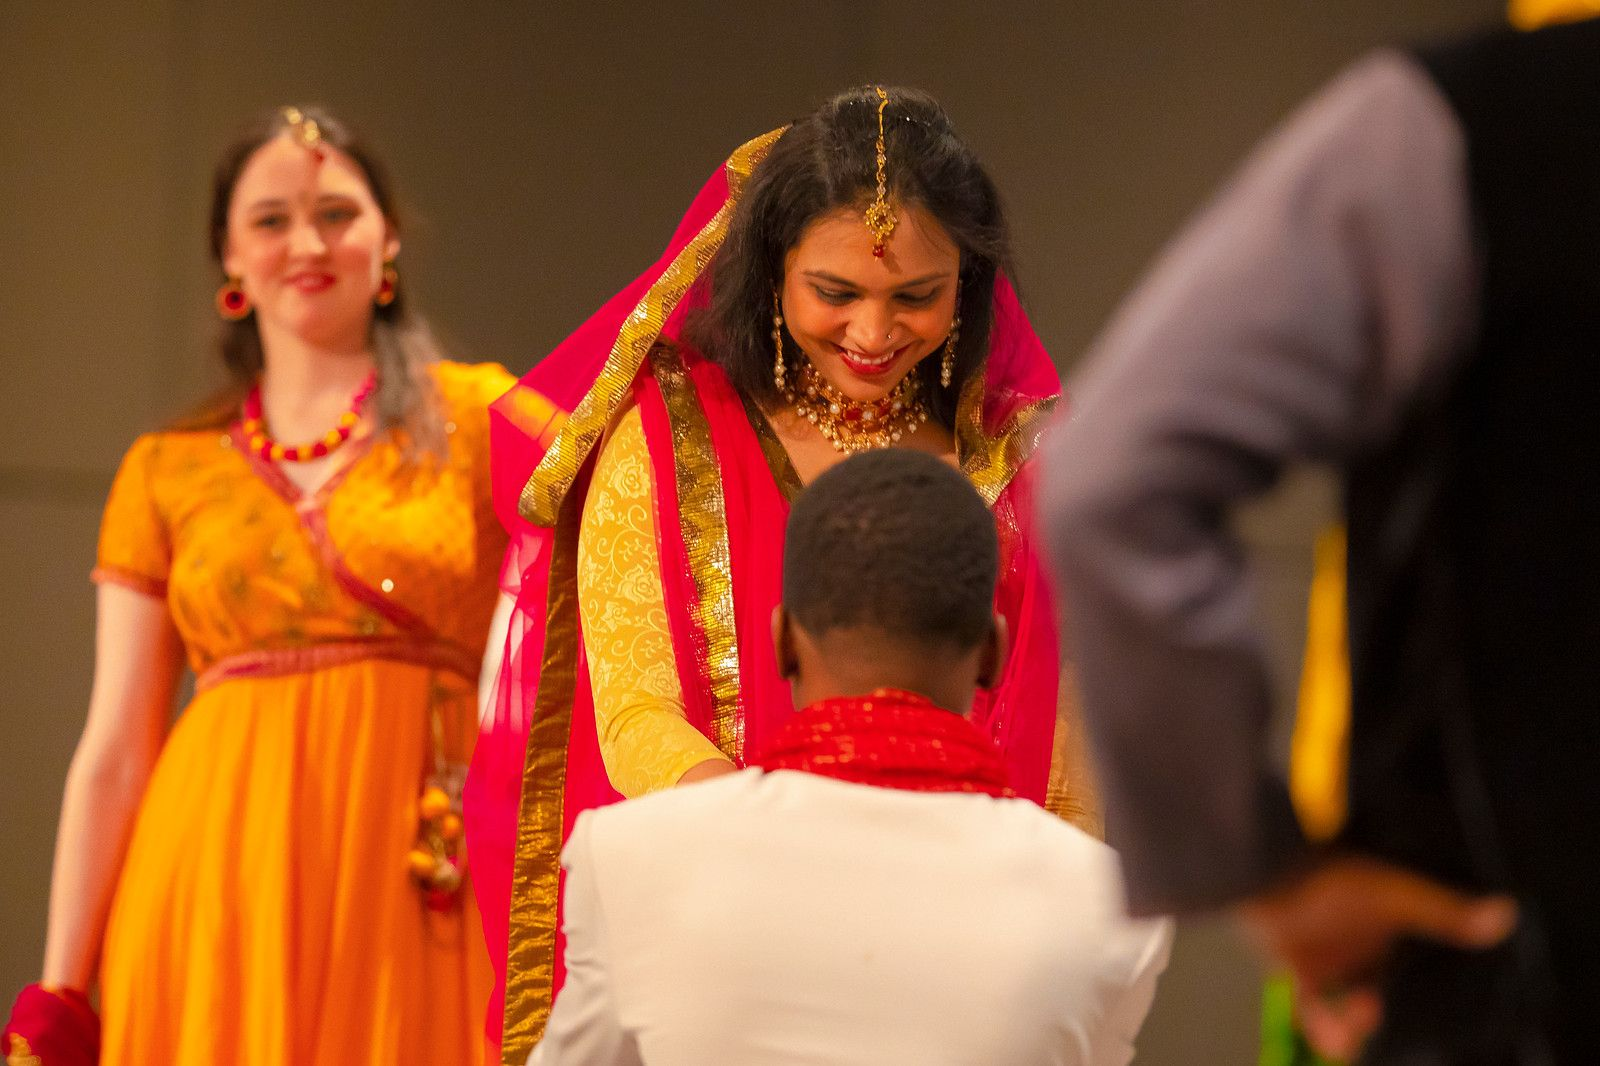 Re-enactment of an Indian marriage proposal